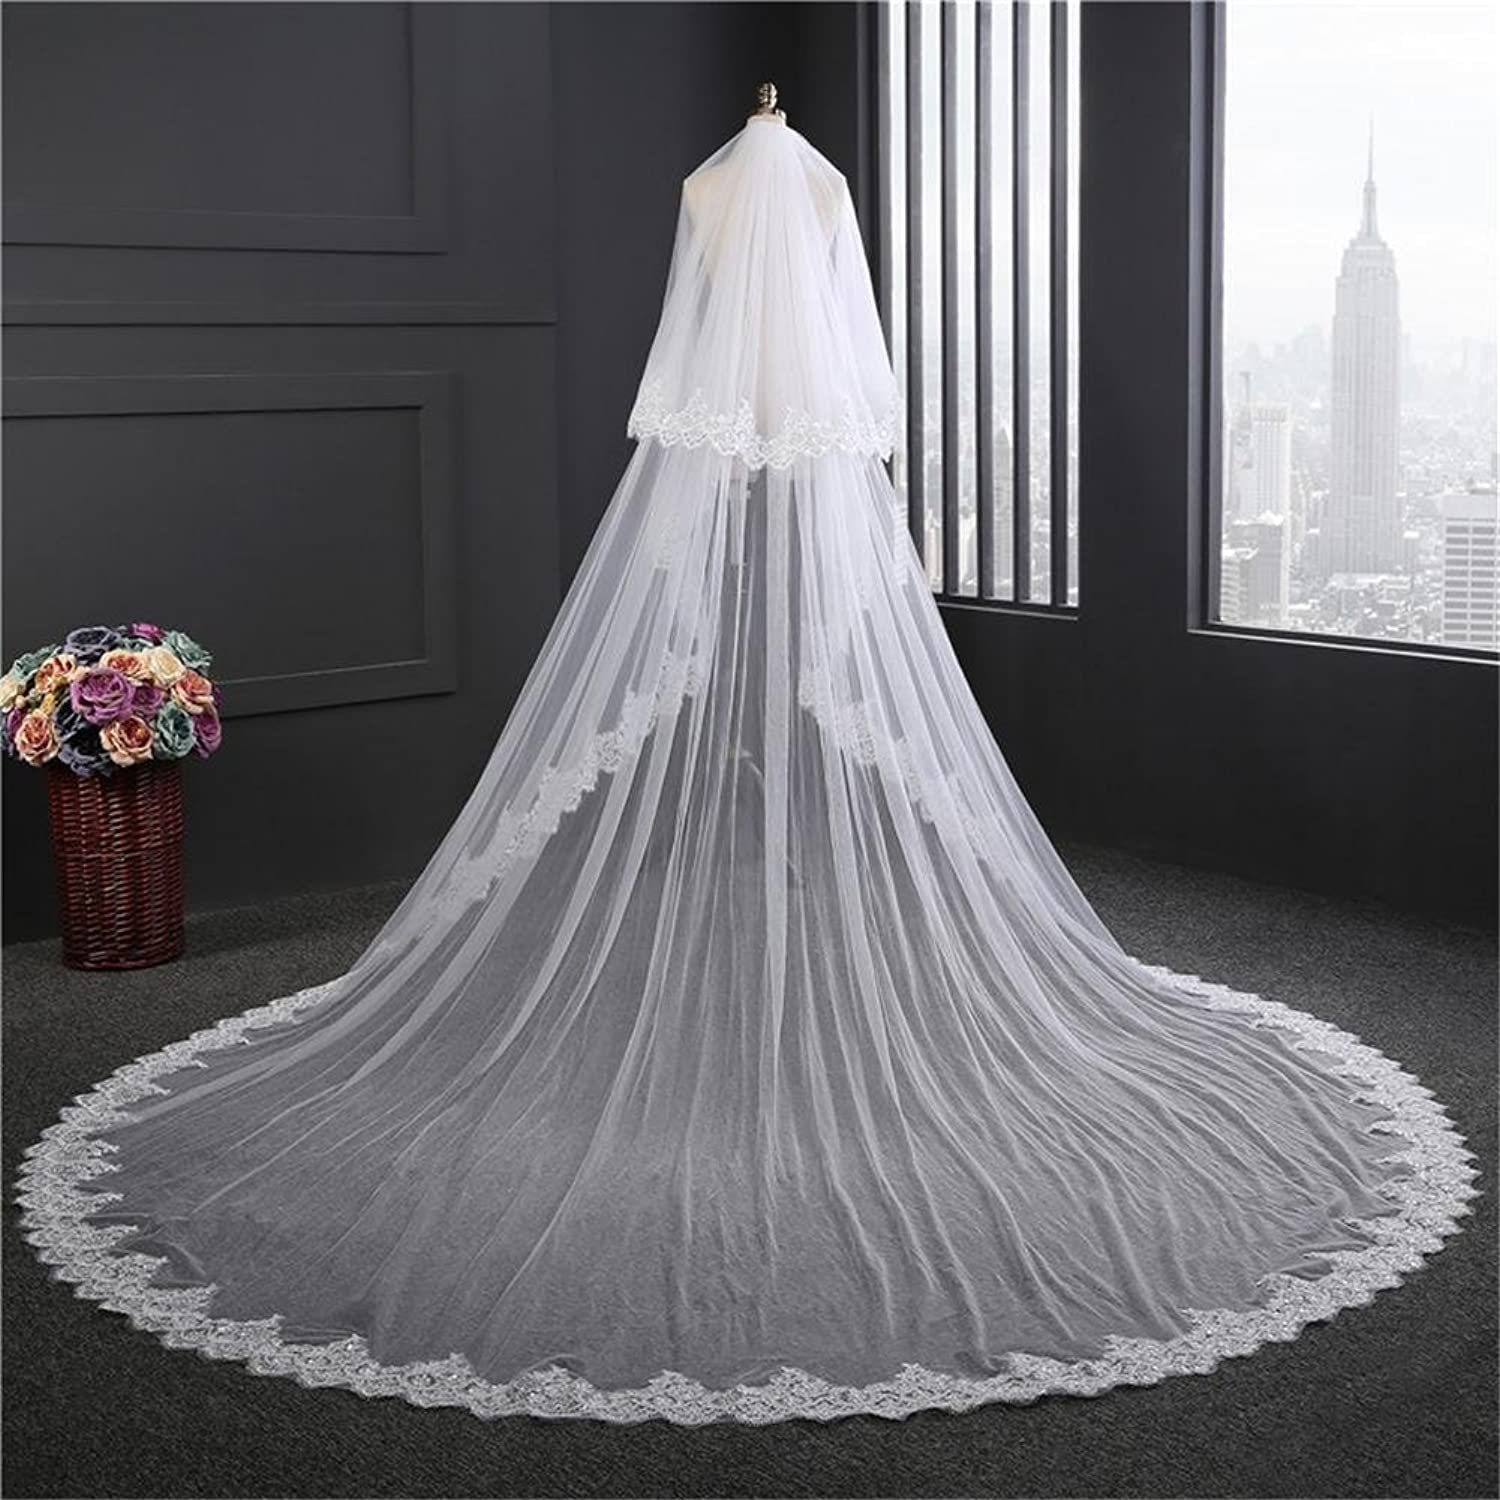 Bridal Veils 3.5M Long Wedding Veil White Ivory Lace Edge Wedding Accessories Mariage Bride Veils with Comb